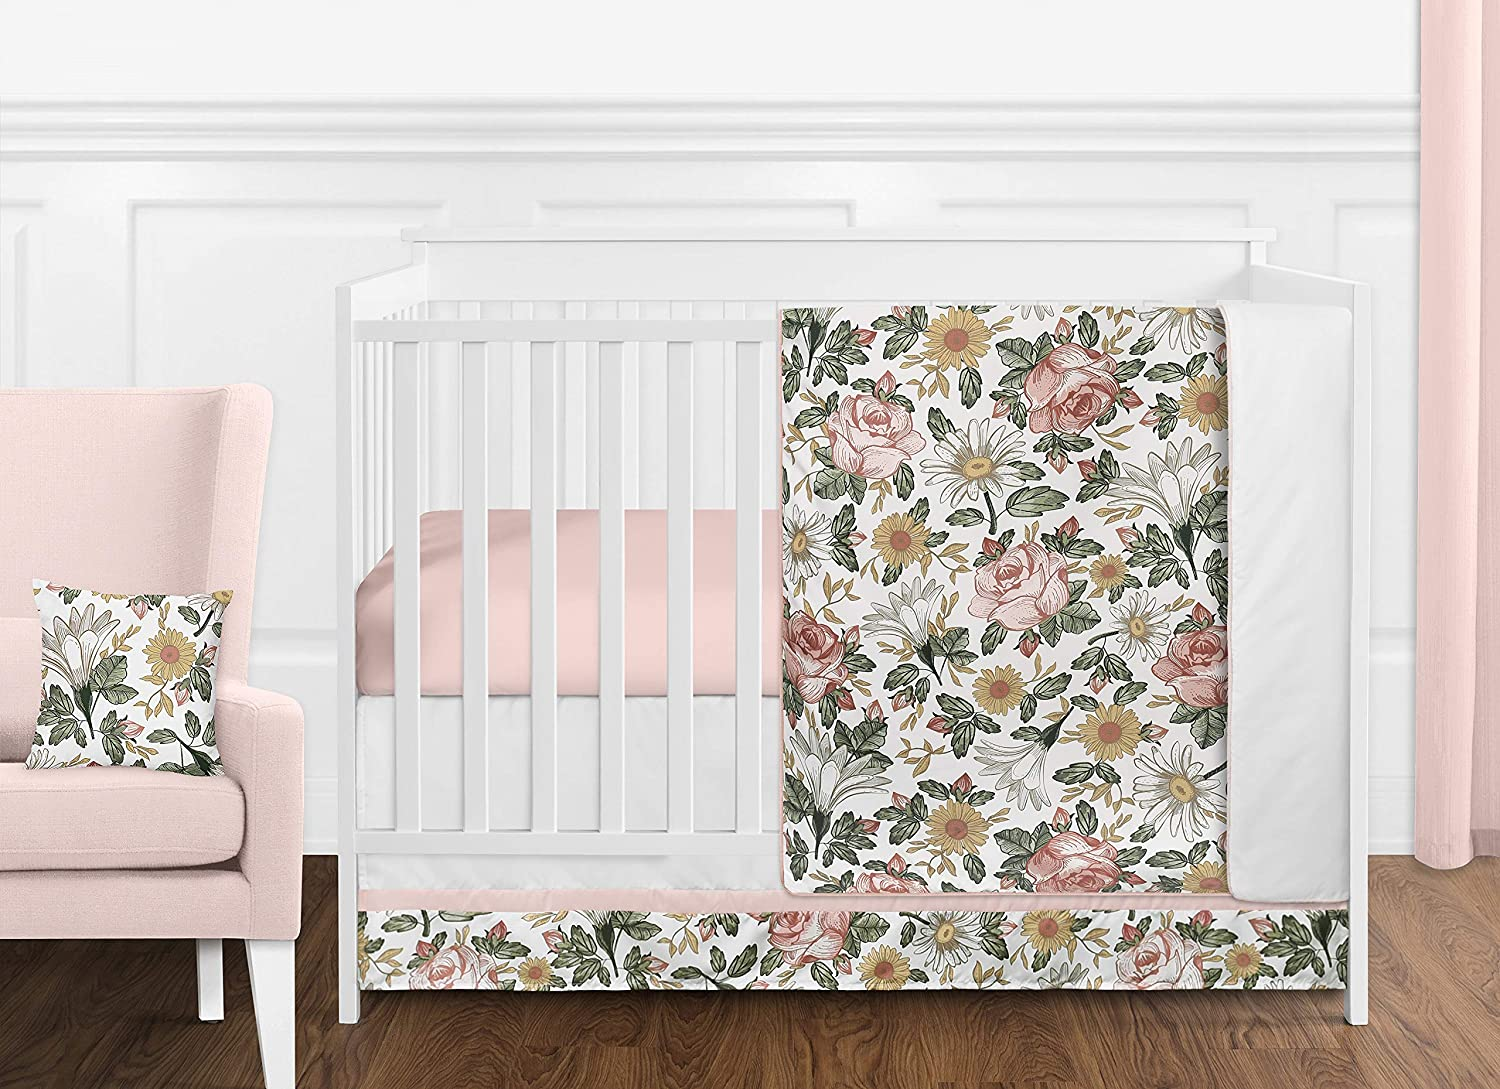 Sweet Jojo Designs Vintage Floral Boho Baby Girl Nursery Crib Bedding Set Without Bumper - 11 Pieces - Blush Pink, Yellow, Green and White Shabby Chic Rose Flower Farmhouse